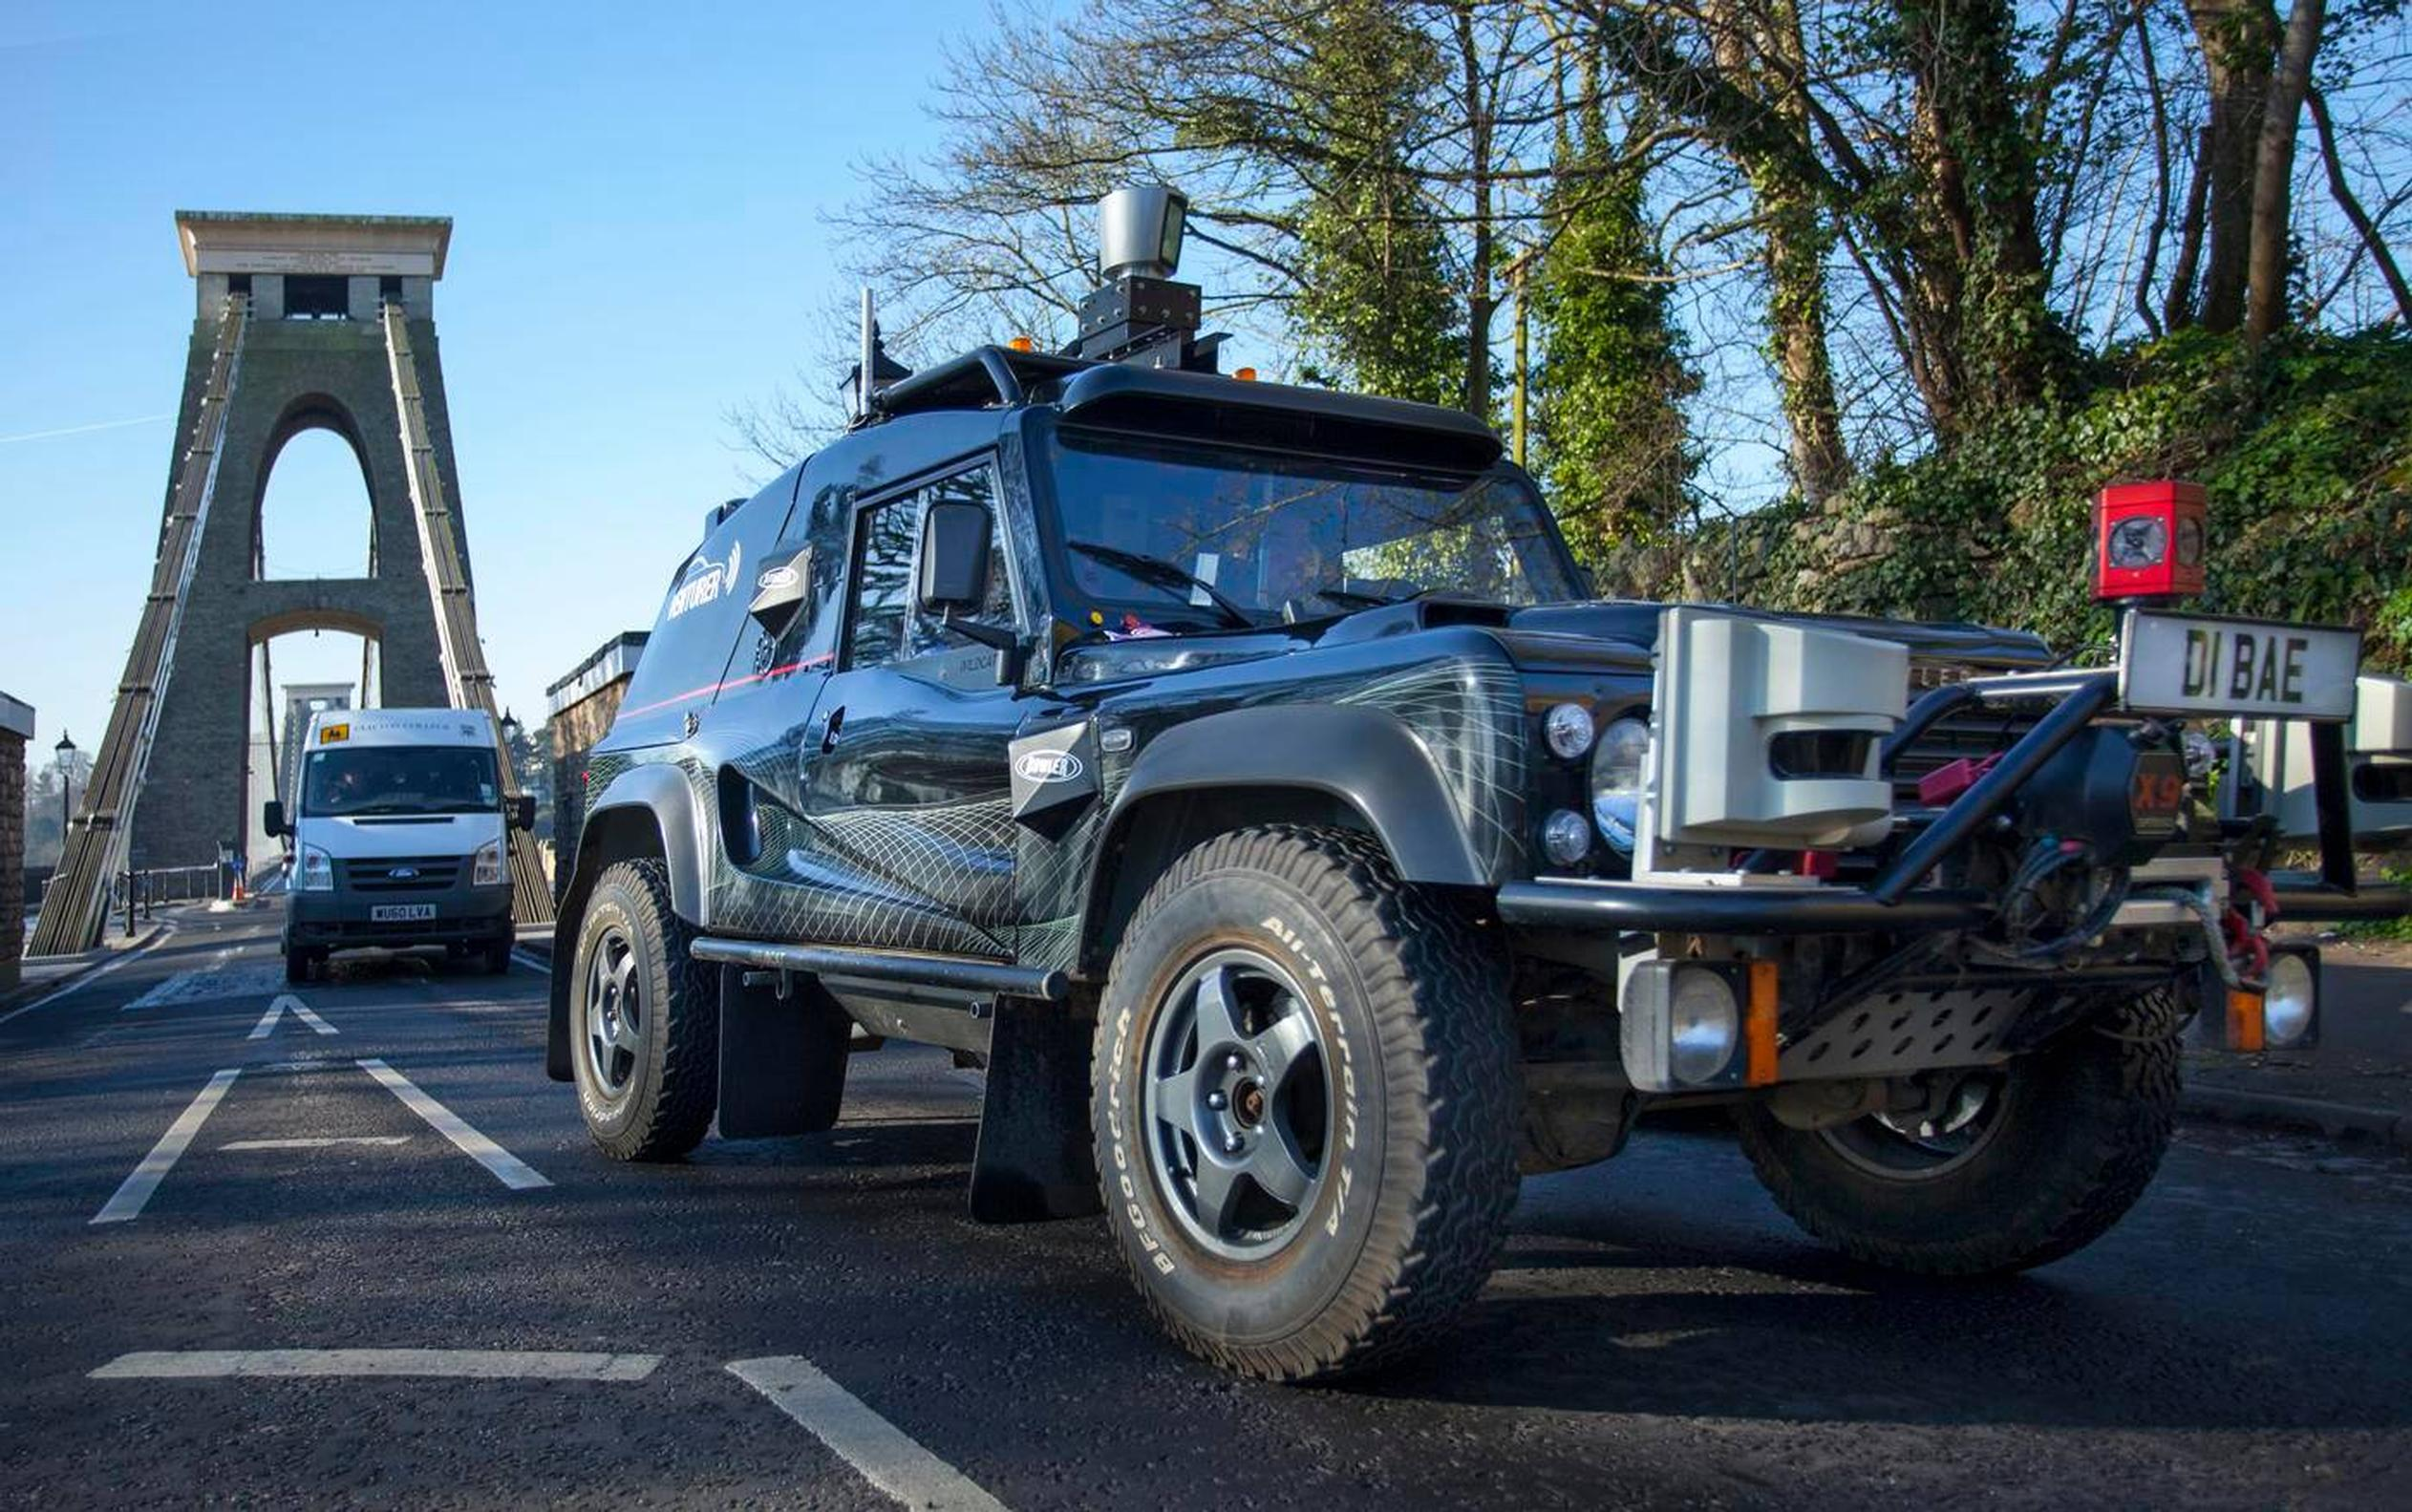 The VENTURER consortium's autonomous vehicle, the BAE Systems Wildcat,  is being trialled in the Bristol and South Gloucestershire Council areas to explore the feasibility of driverless cars in the UK